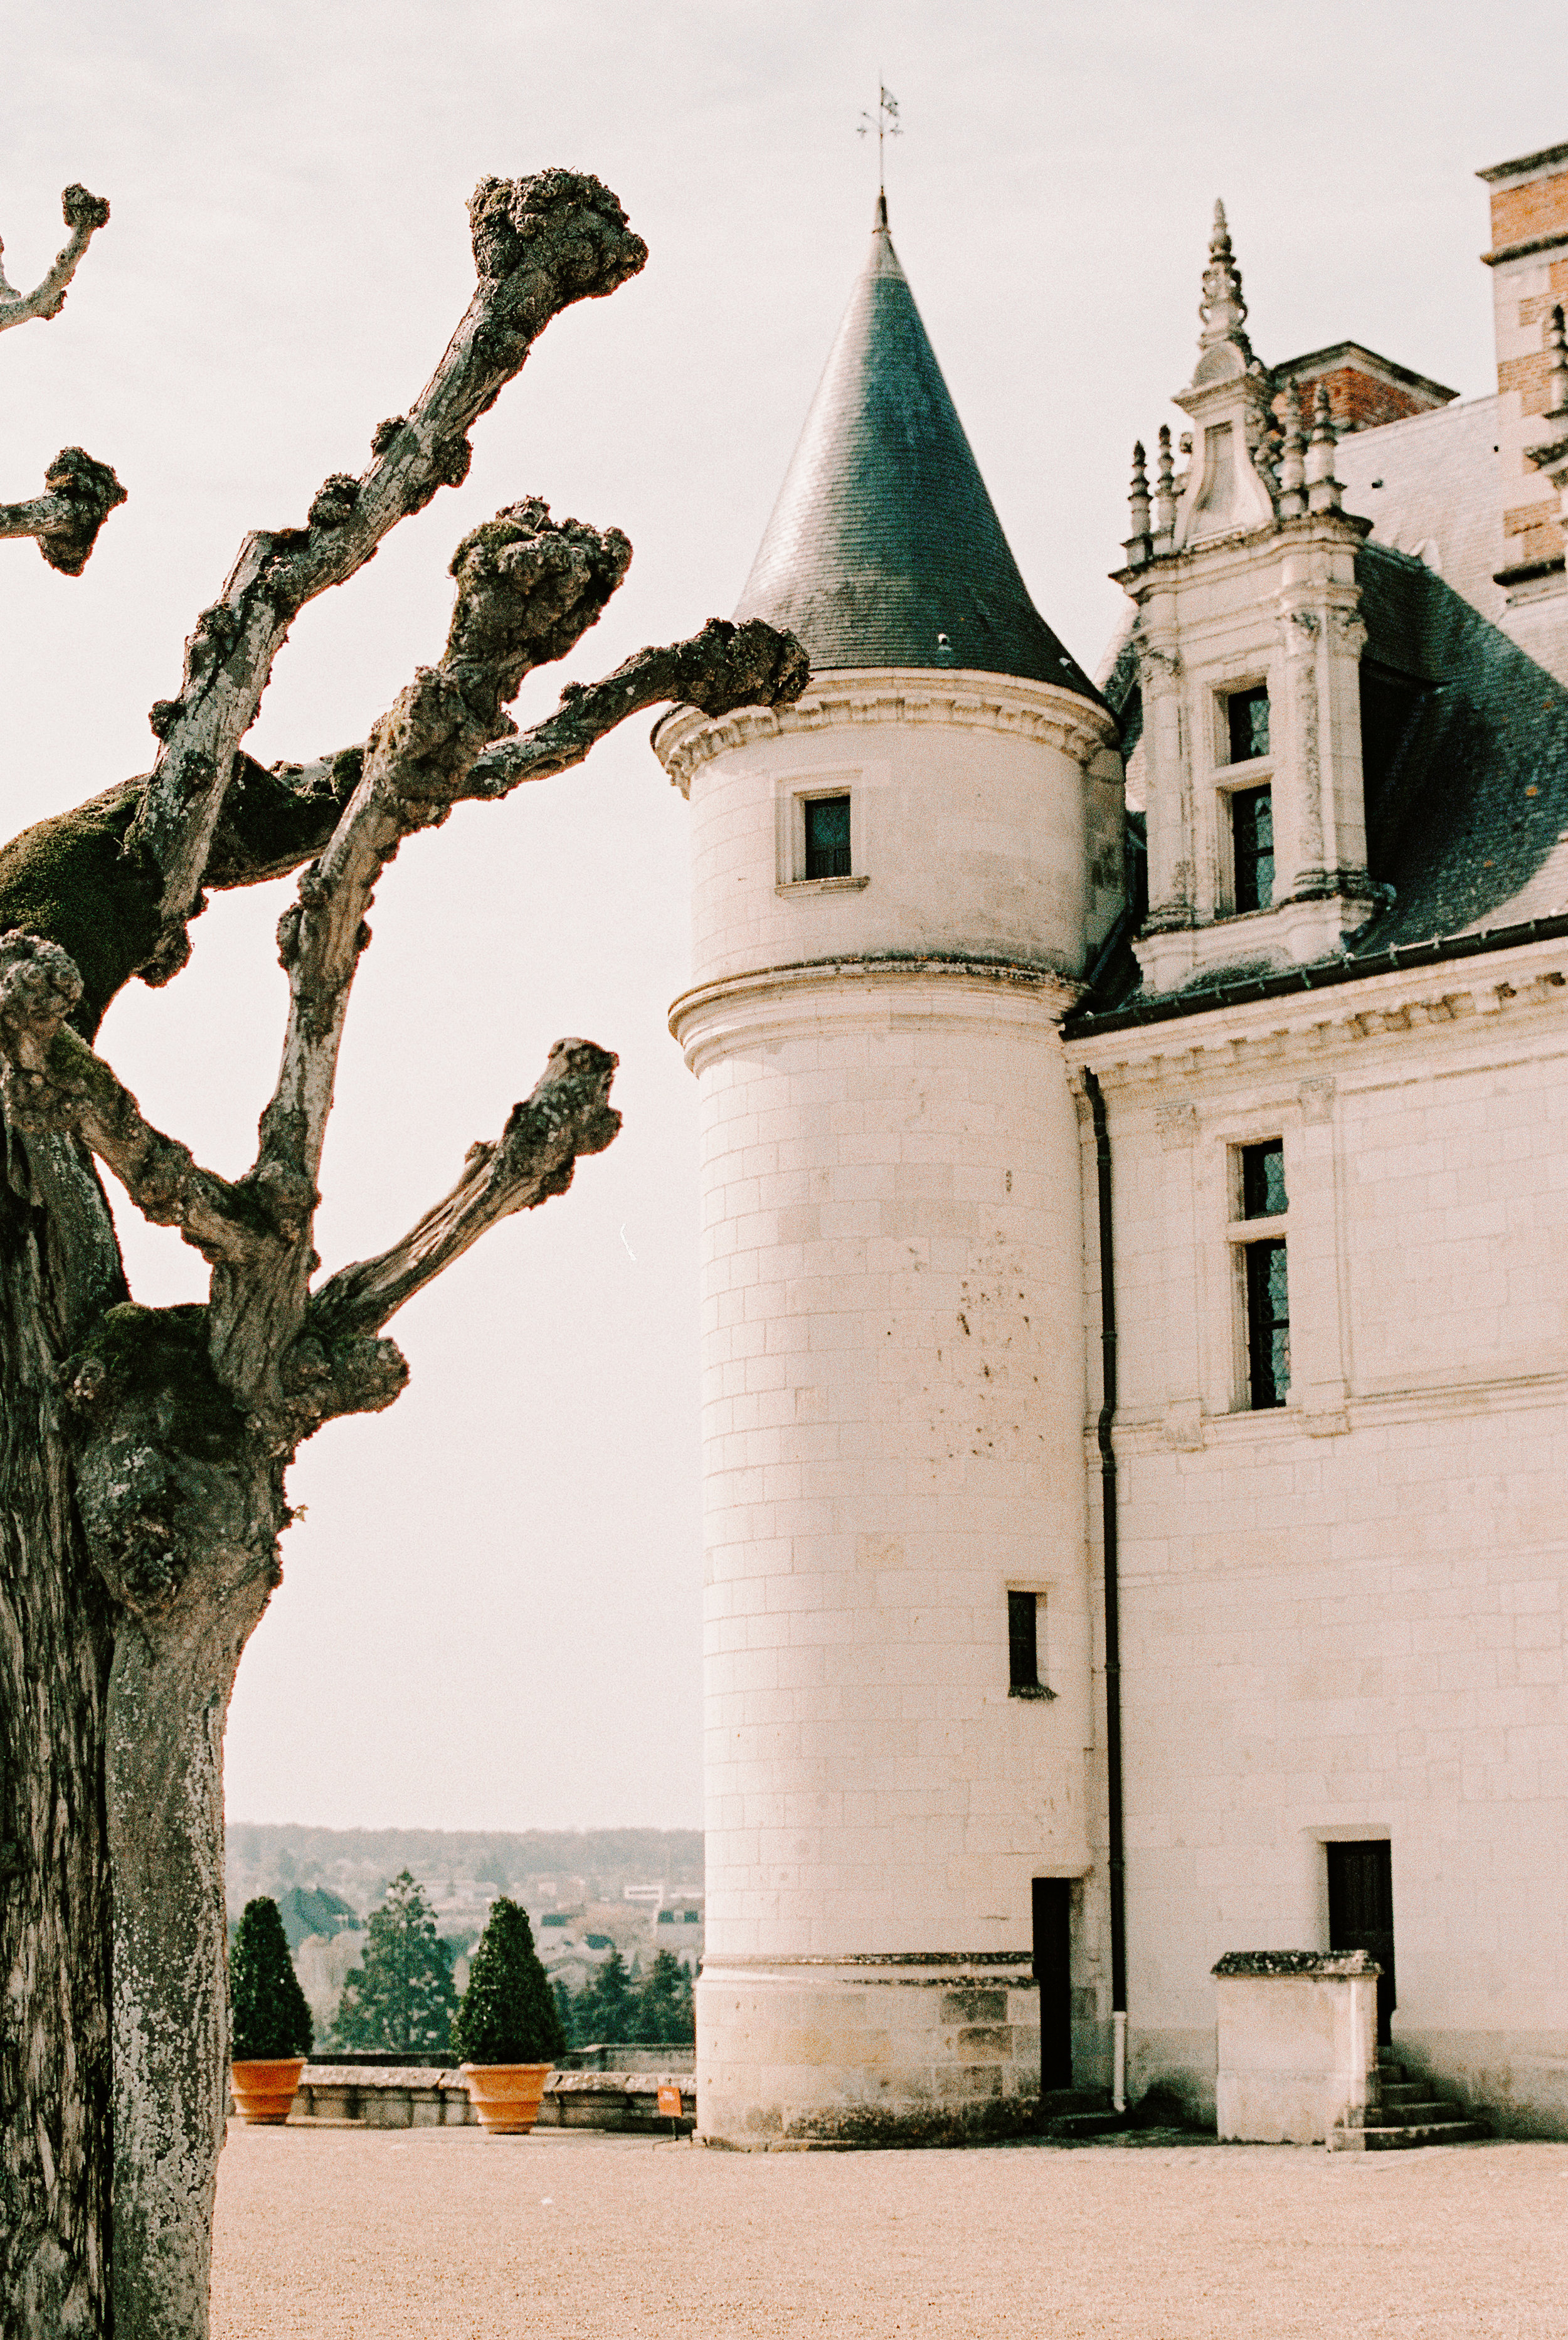 Our visit to Chateau Amboise was breathtaking.